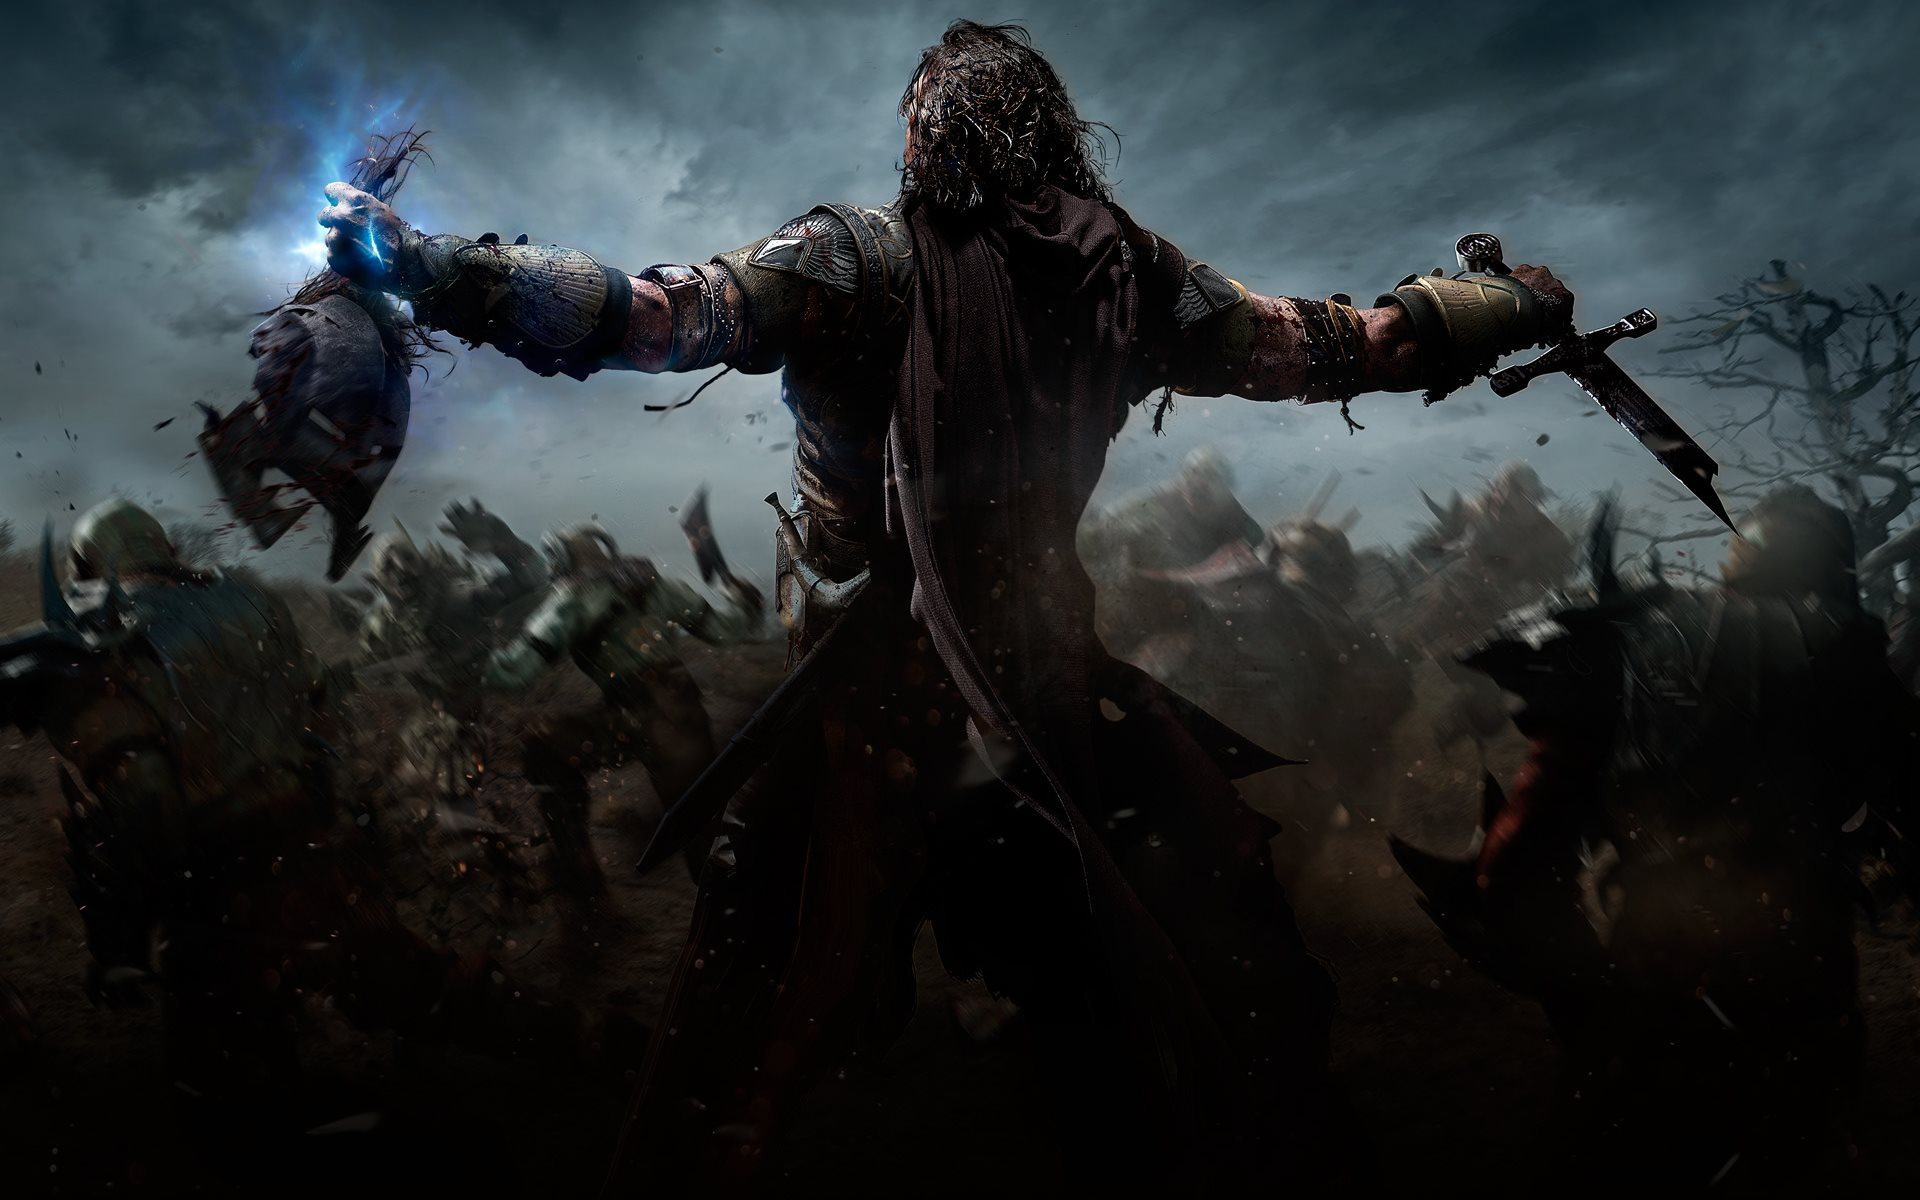 1920x1200 Video Game Middle-earth: Shadow Of Mordor